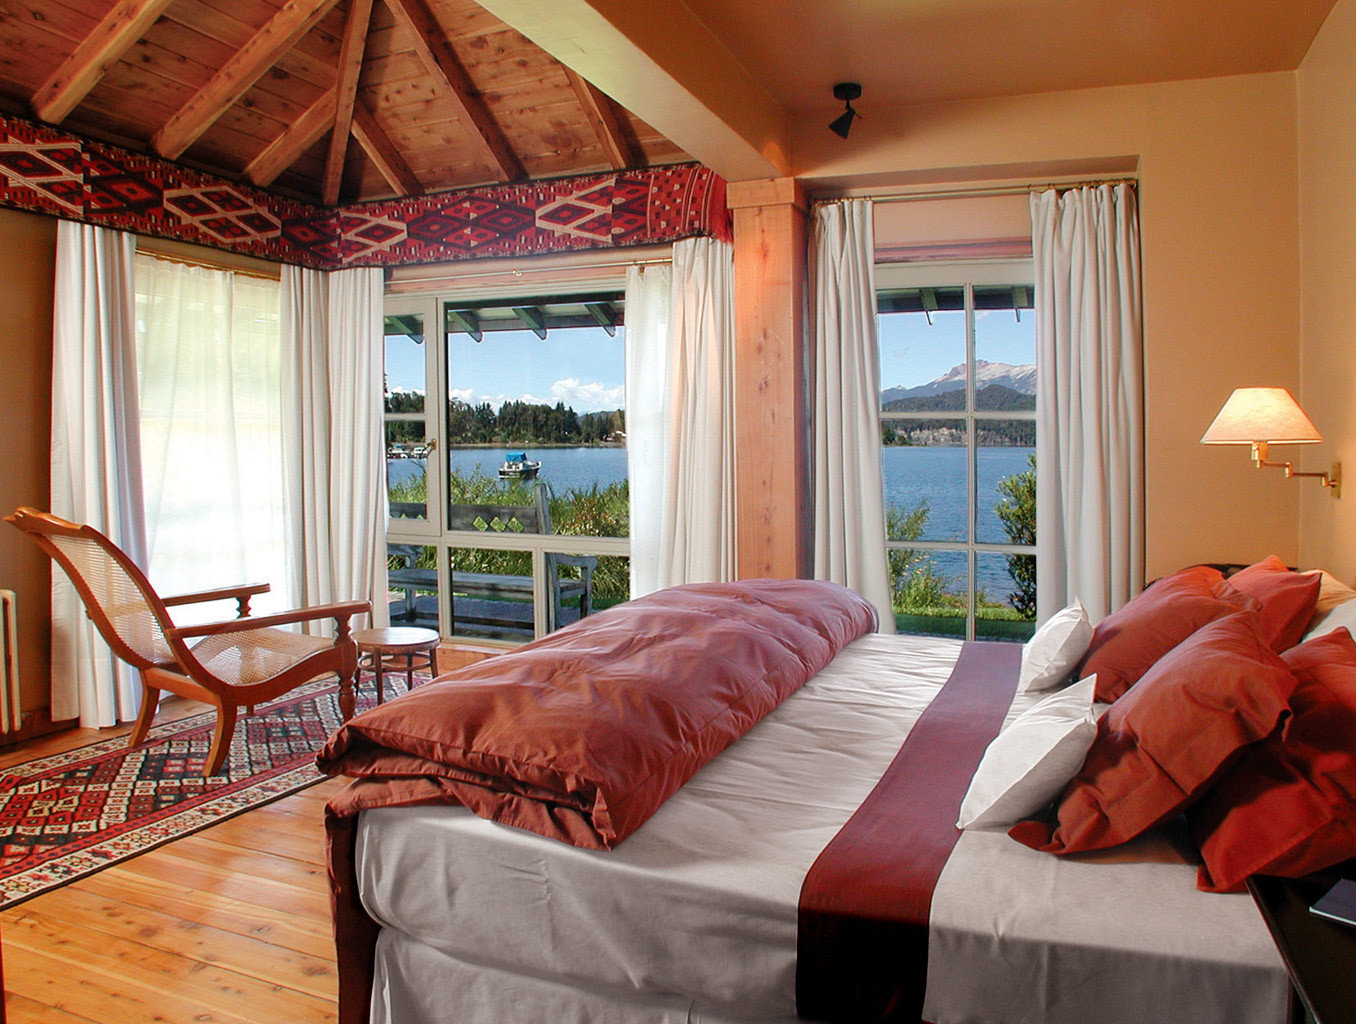 Bedroom Country Eco Forest Lake Mountains Nature Scenic views Waterfront property home cottage Suite Villa living room Resort farmhouse